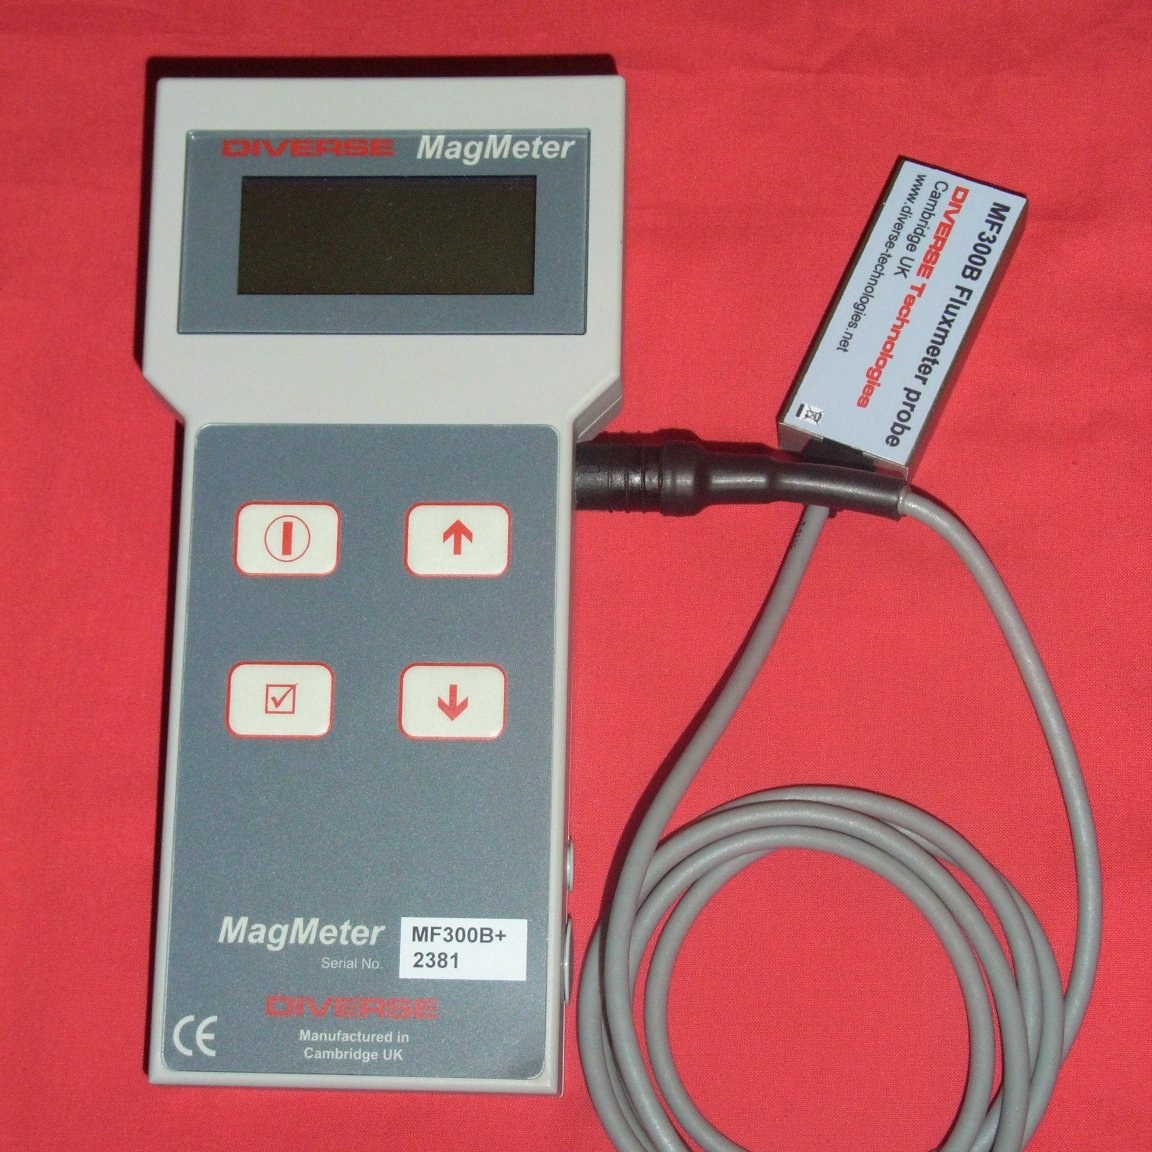 Gaussmeter measures magnetic field with robust stainless steel probe